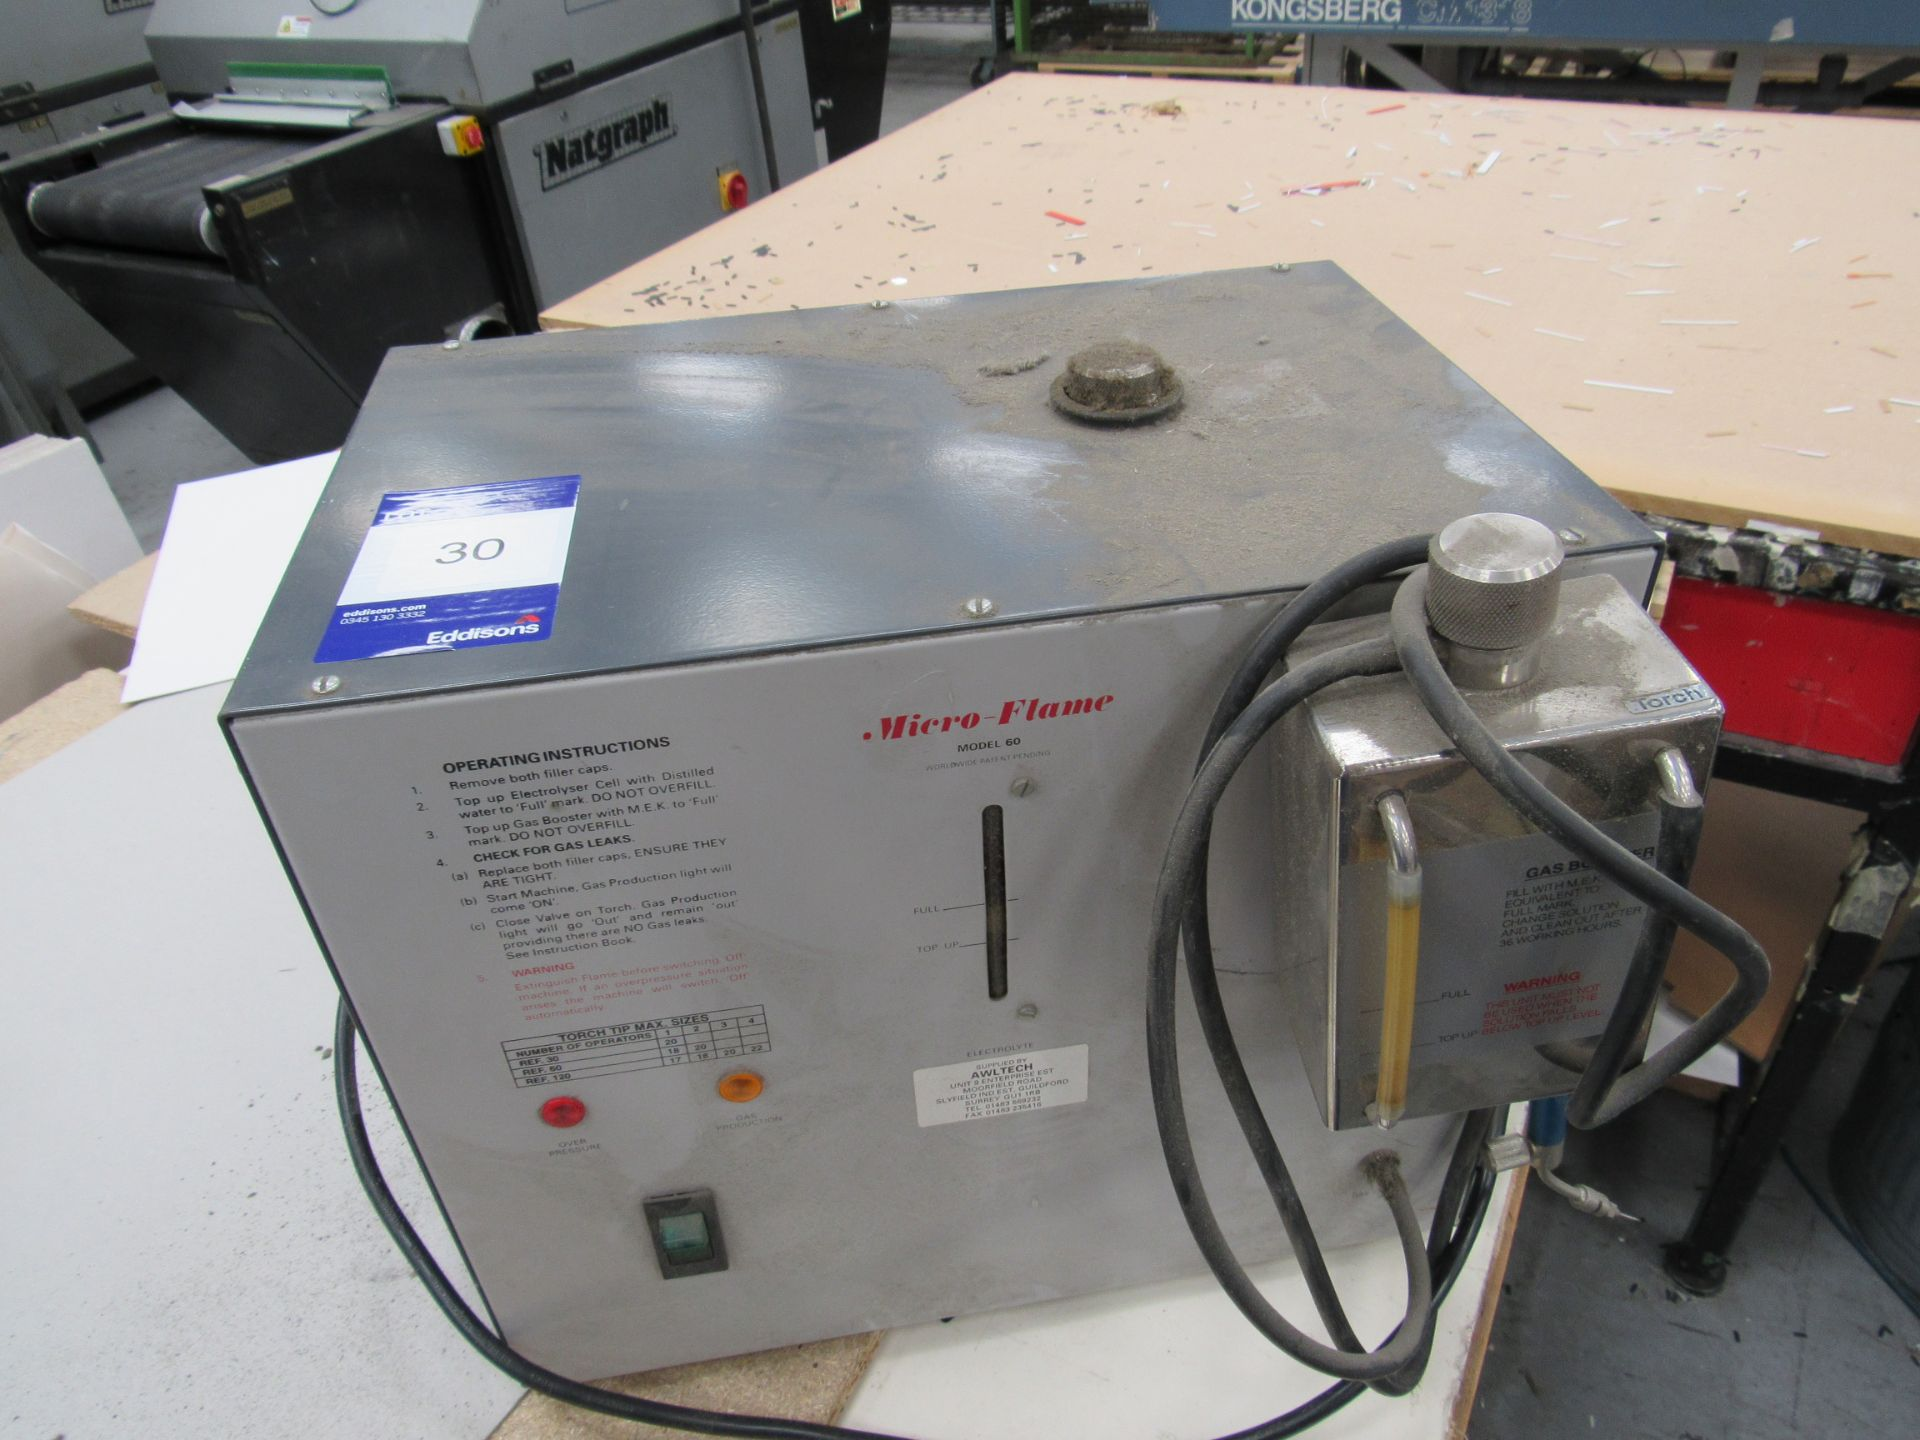 Microflame 60 Flame Polisher Serial Number 02126382 - Image 2 of 3